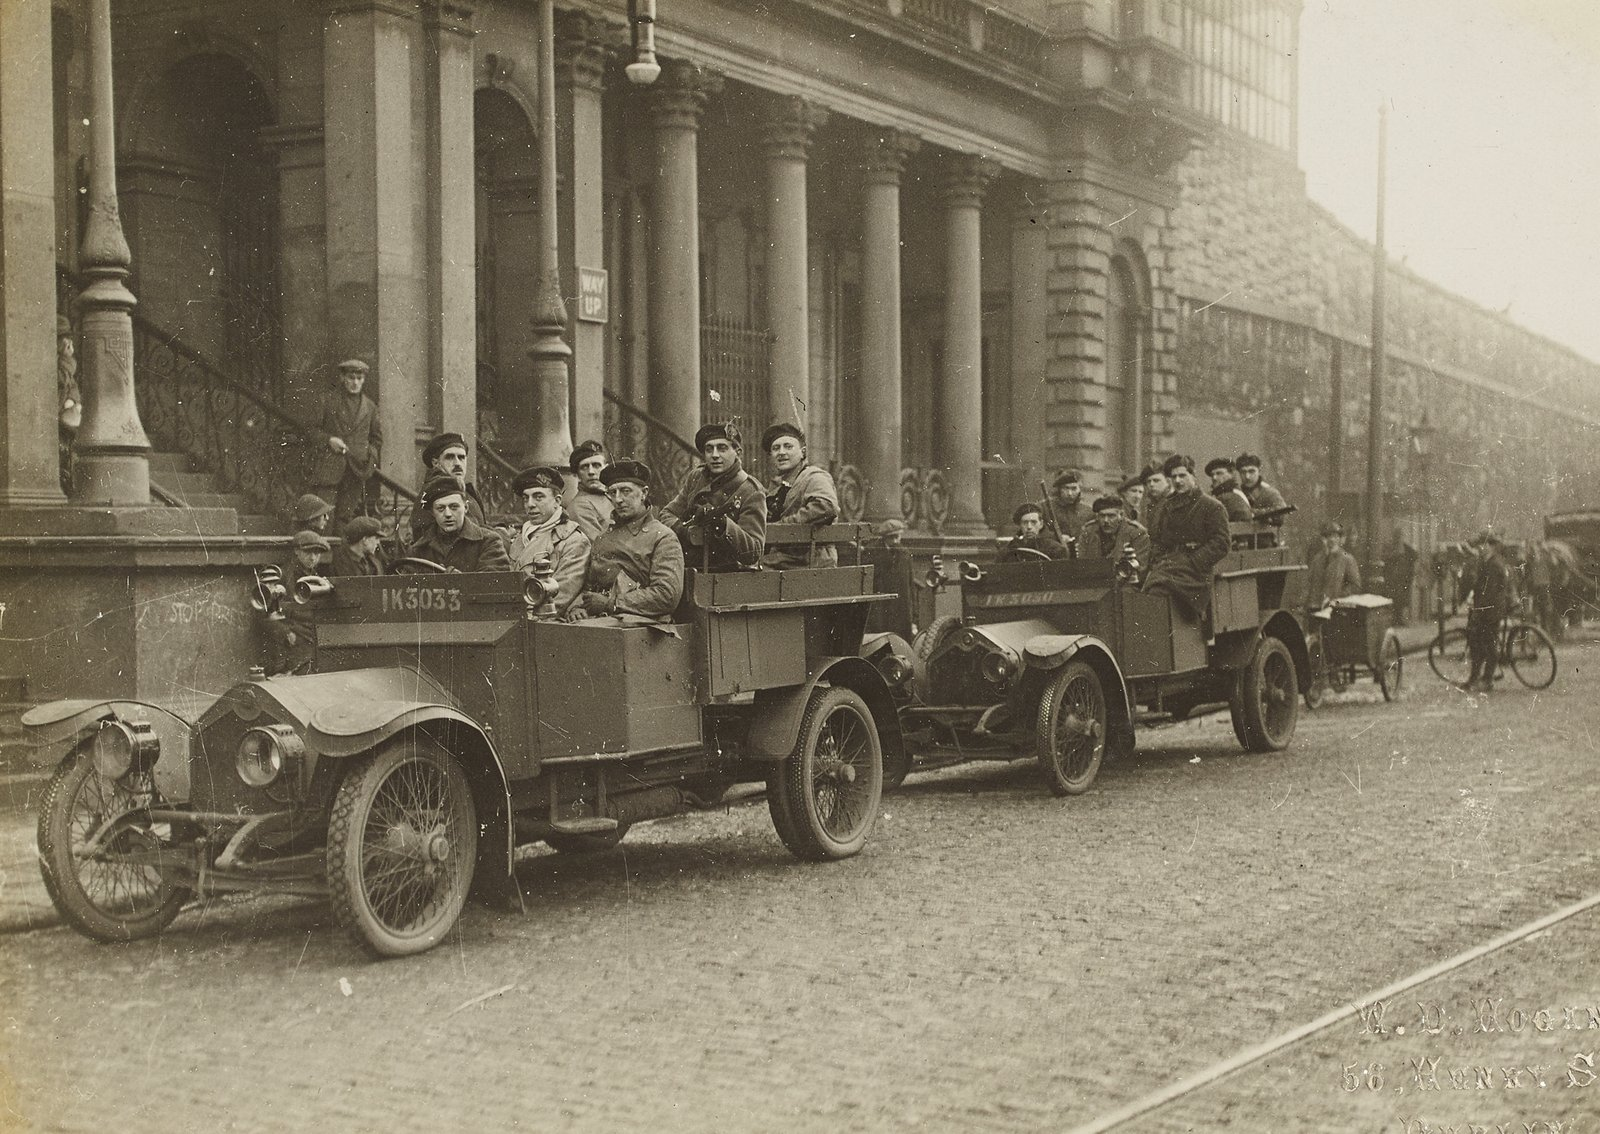 Image - Auxiliaries outside Amiens Street station, now Connolly Station, in 1921. Image courtesy of the National Library of Ireland